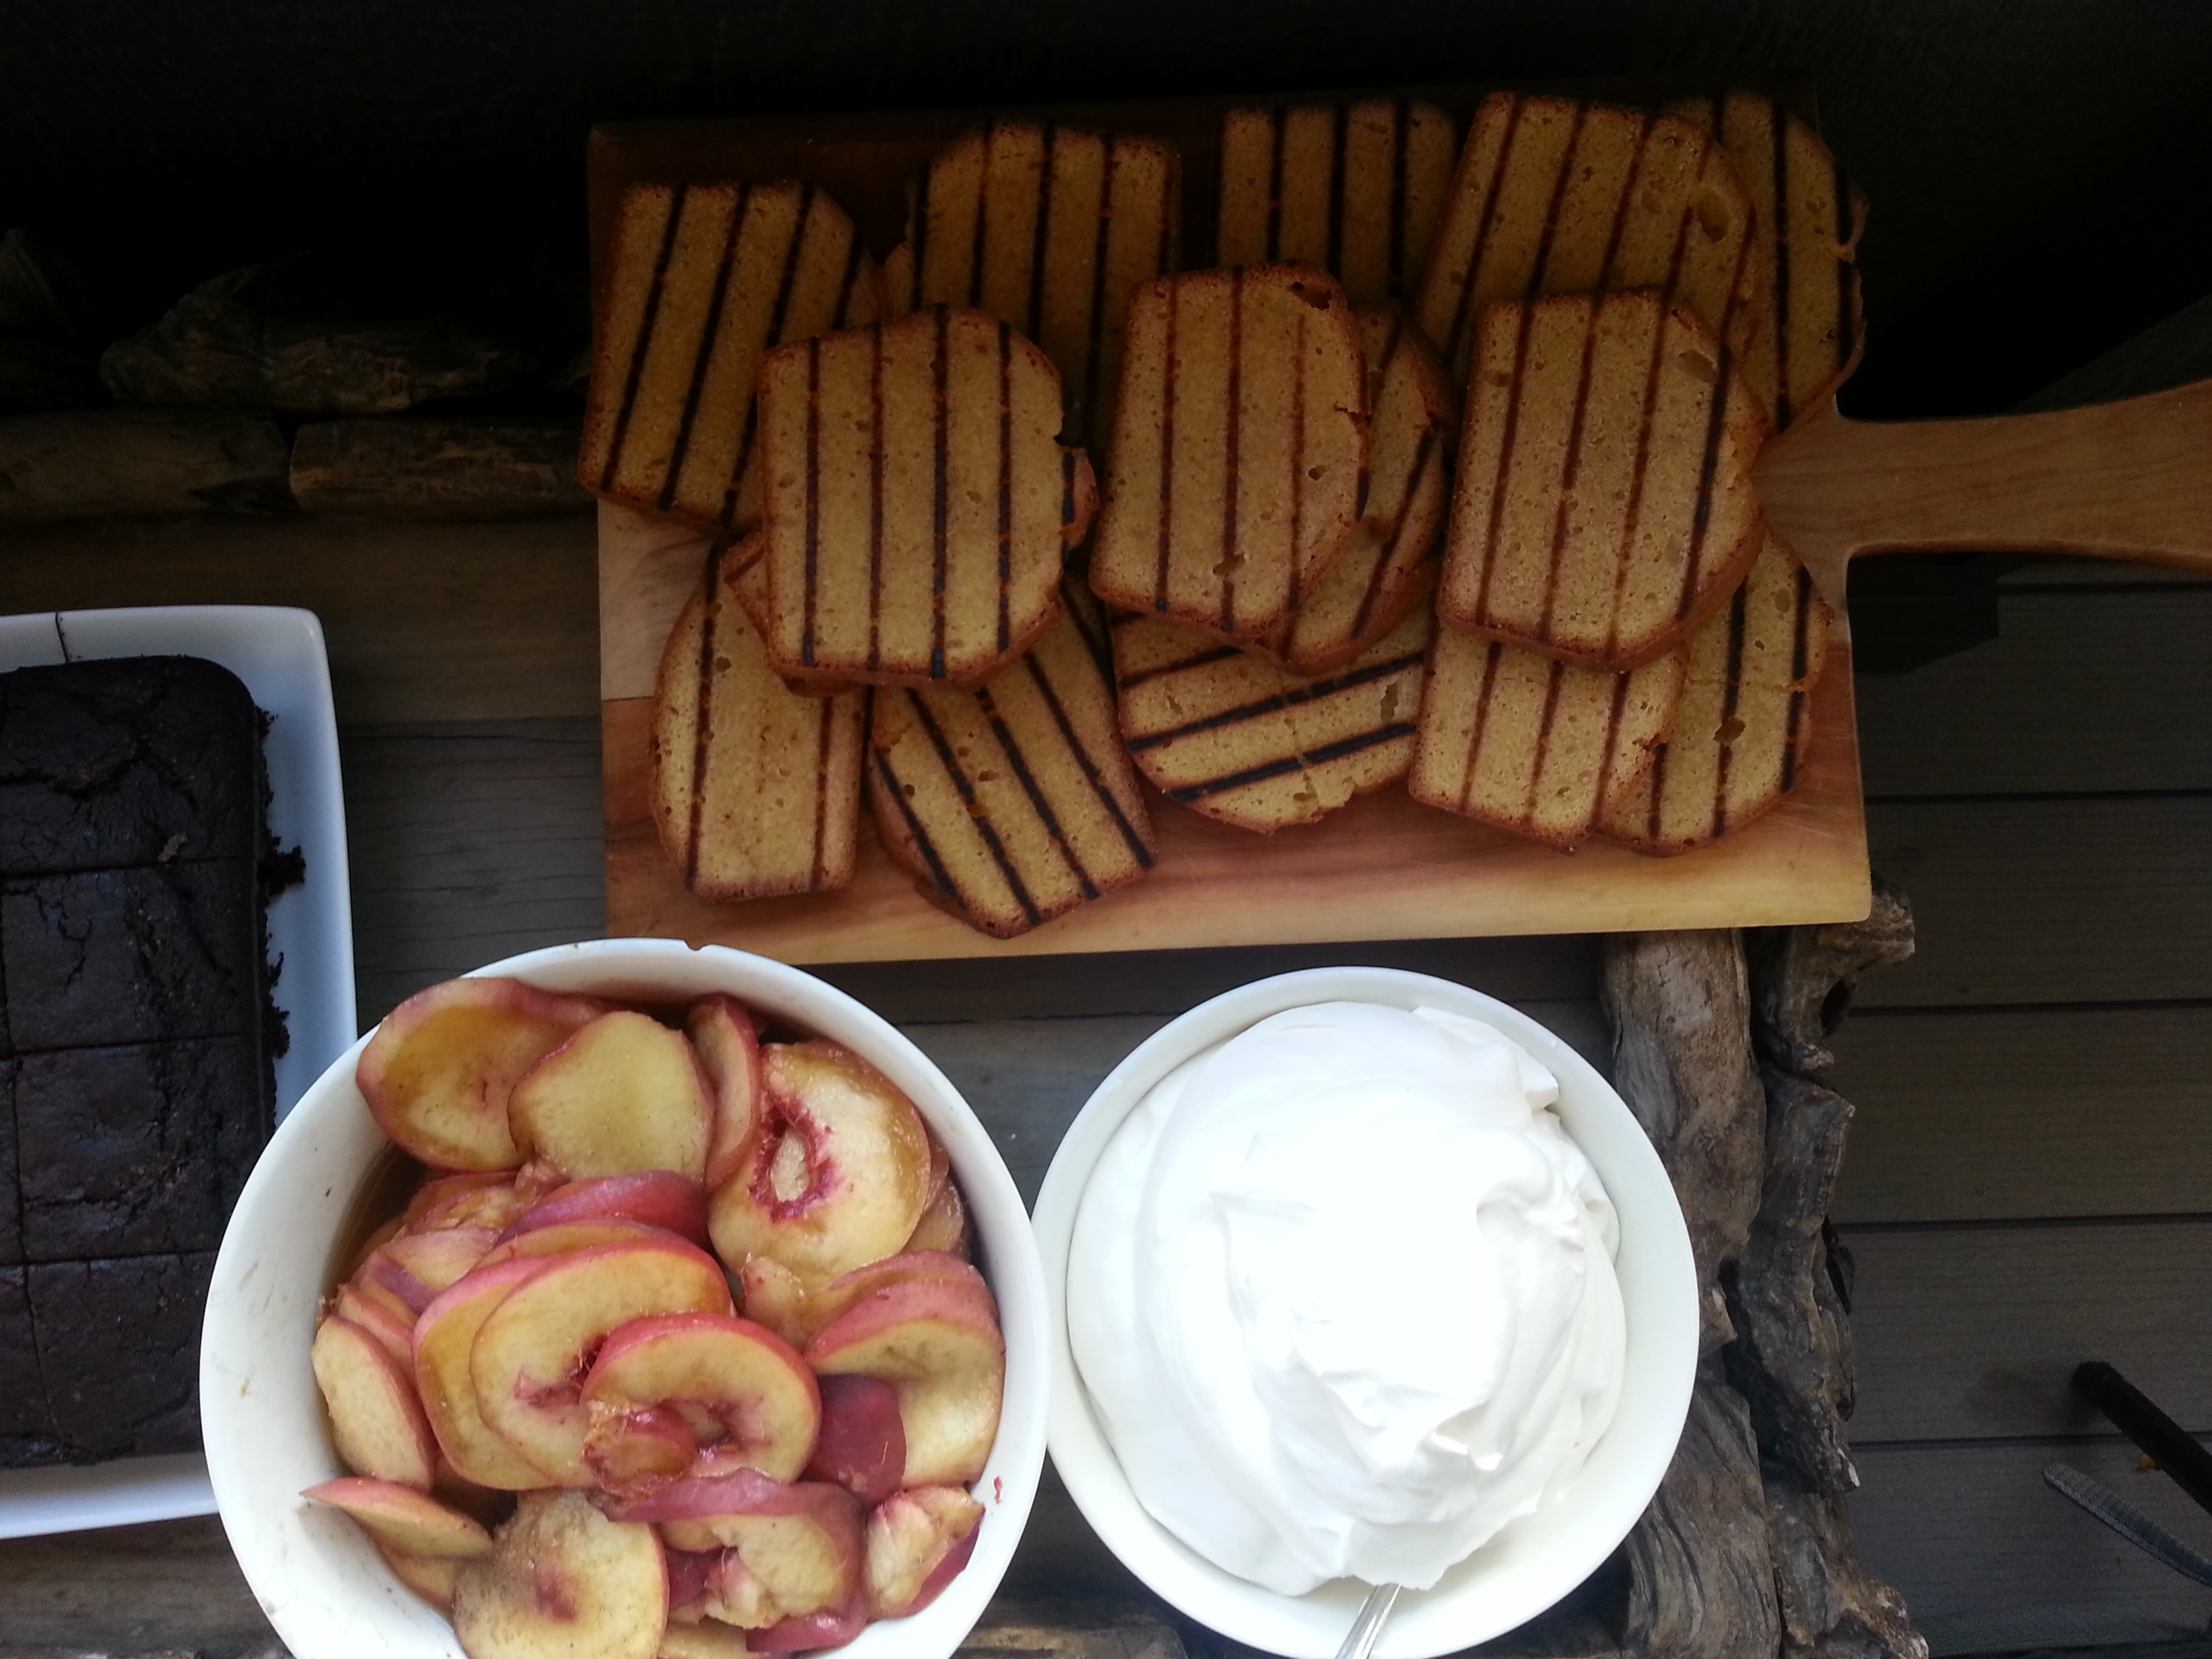 Slices of Browned-Butter Brown Sugar Pound Cake grilled and served with Maple-Cardamom Peaches and Whipped Cream.  Heavenly!